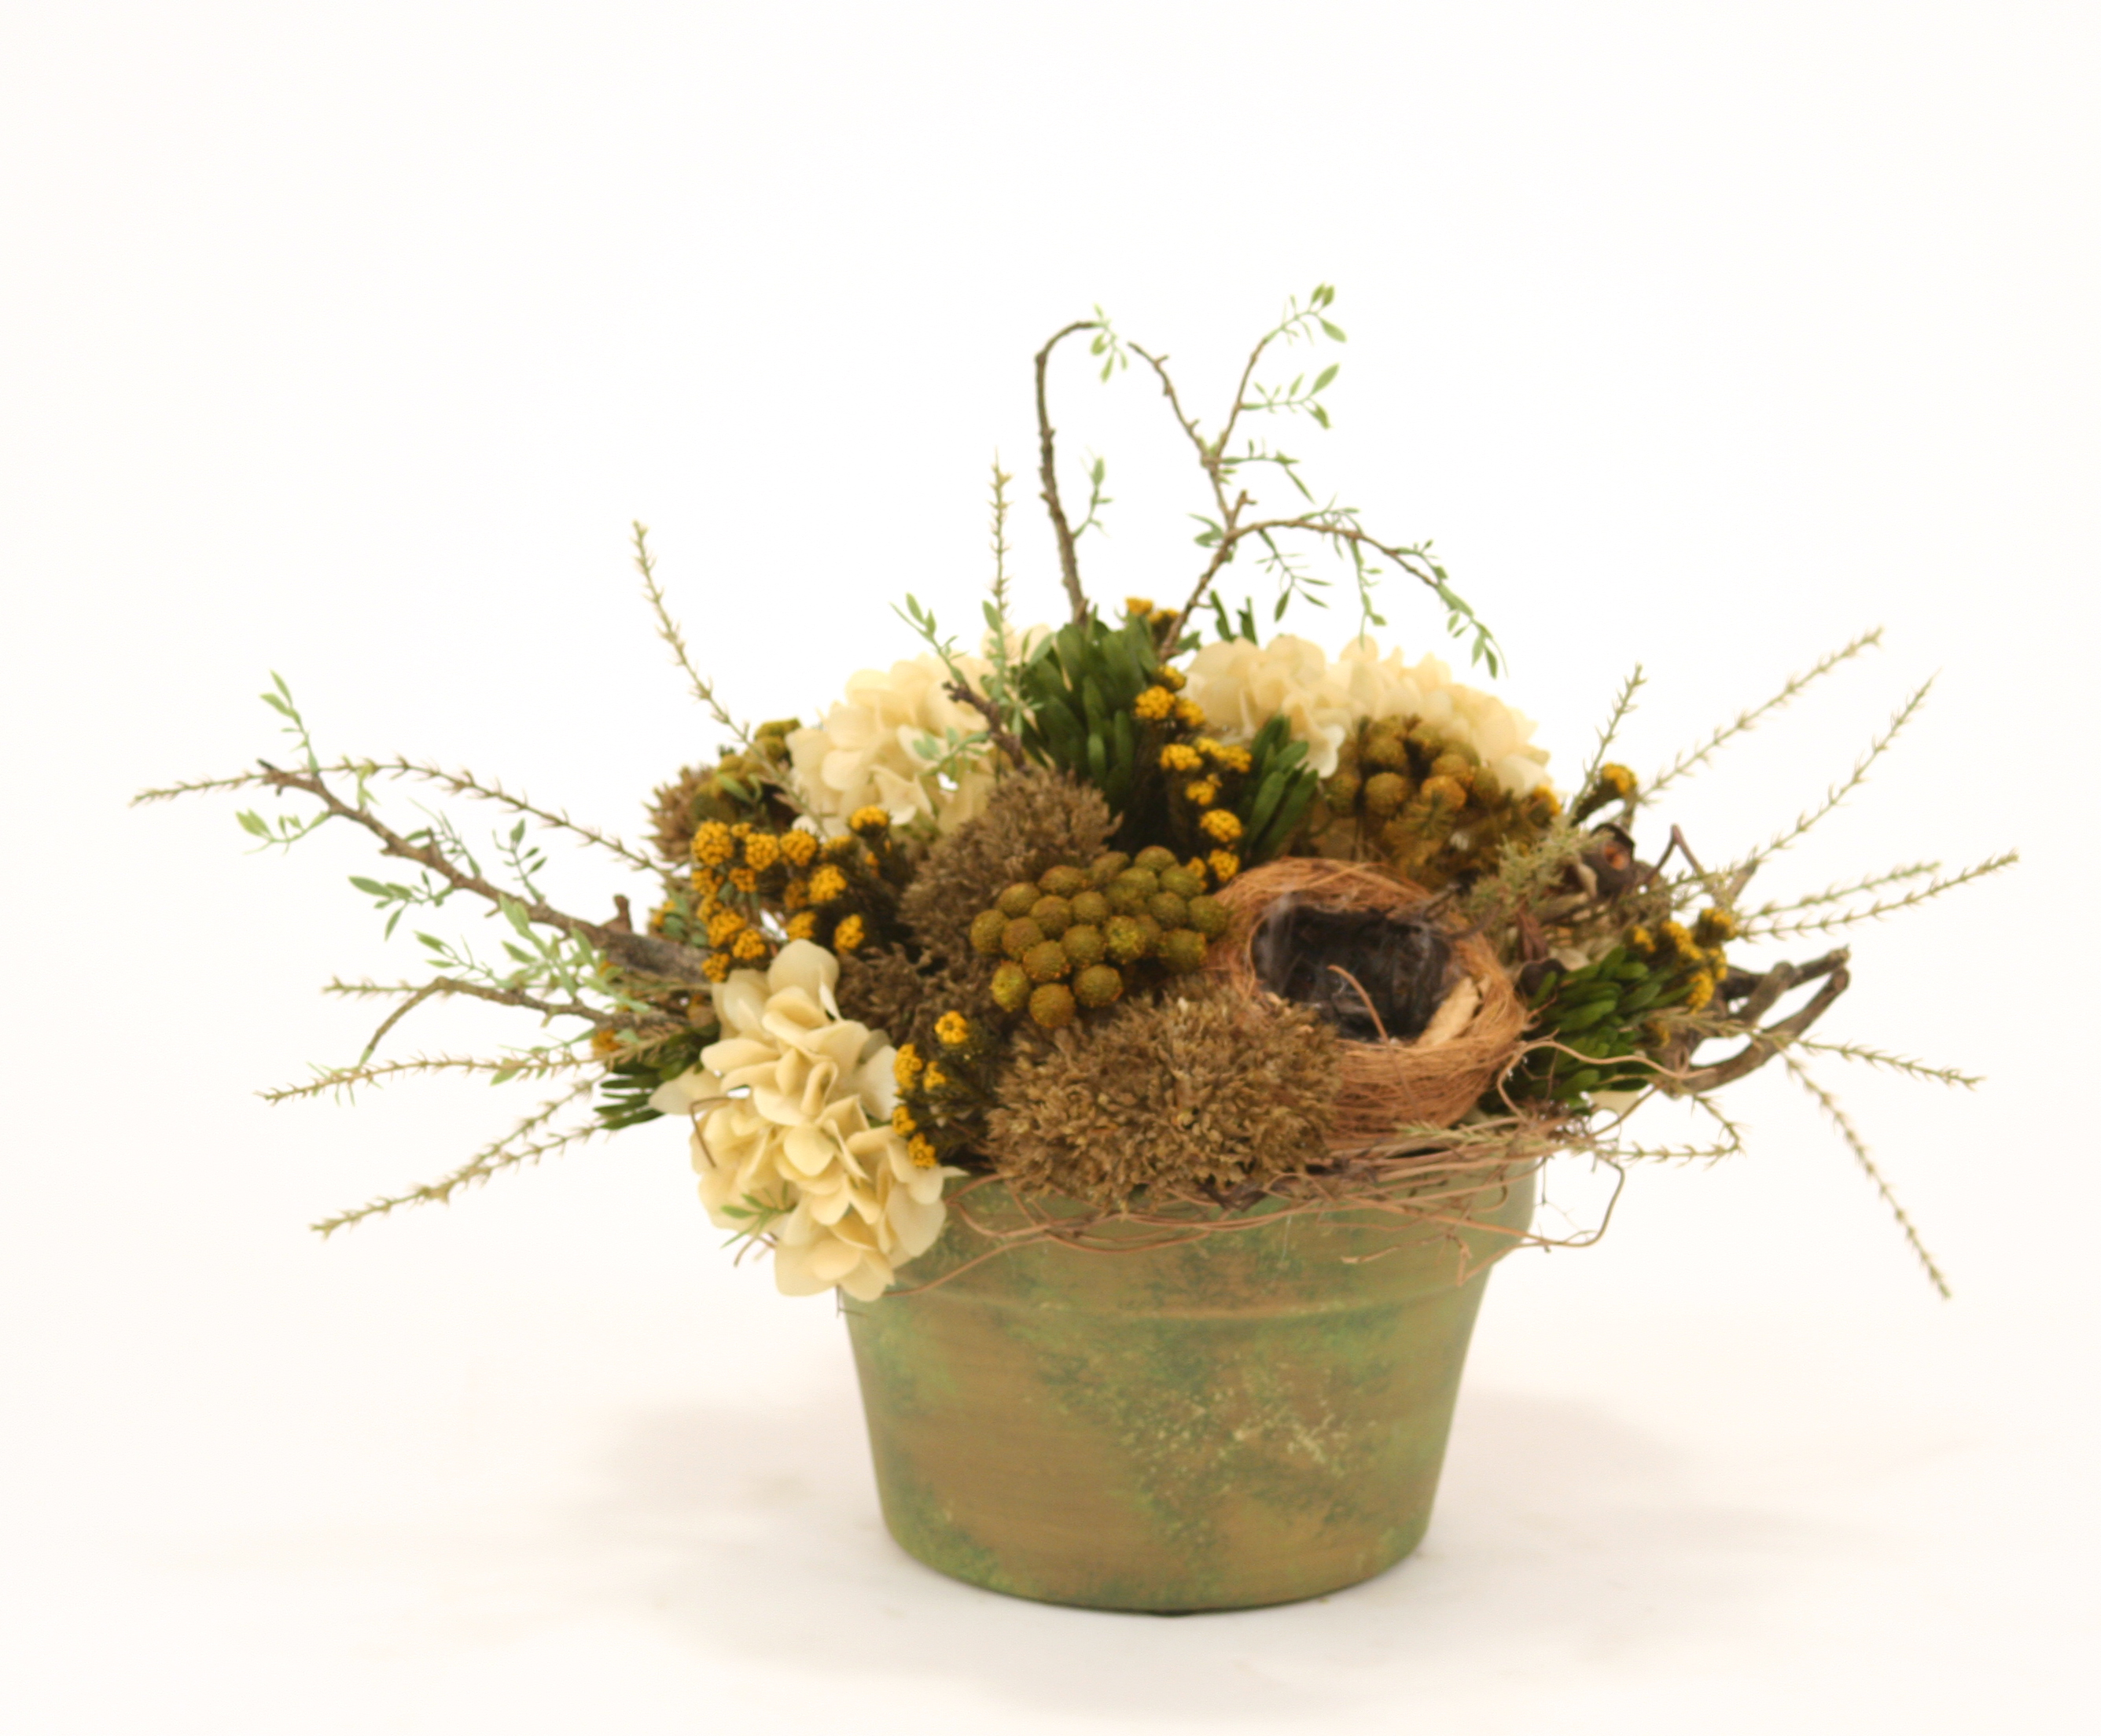 Dried Greenery Rustic Birds Nest Mix Wreathed With Honeysuckle